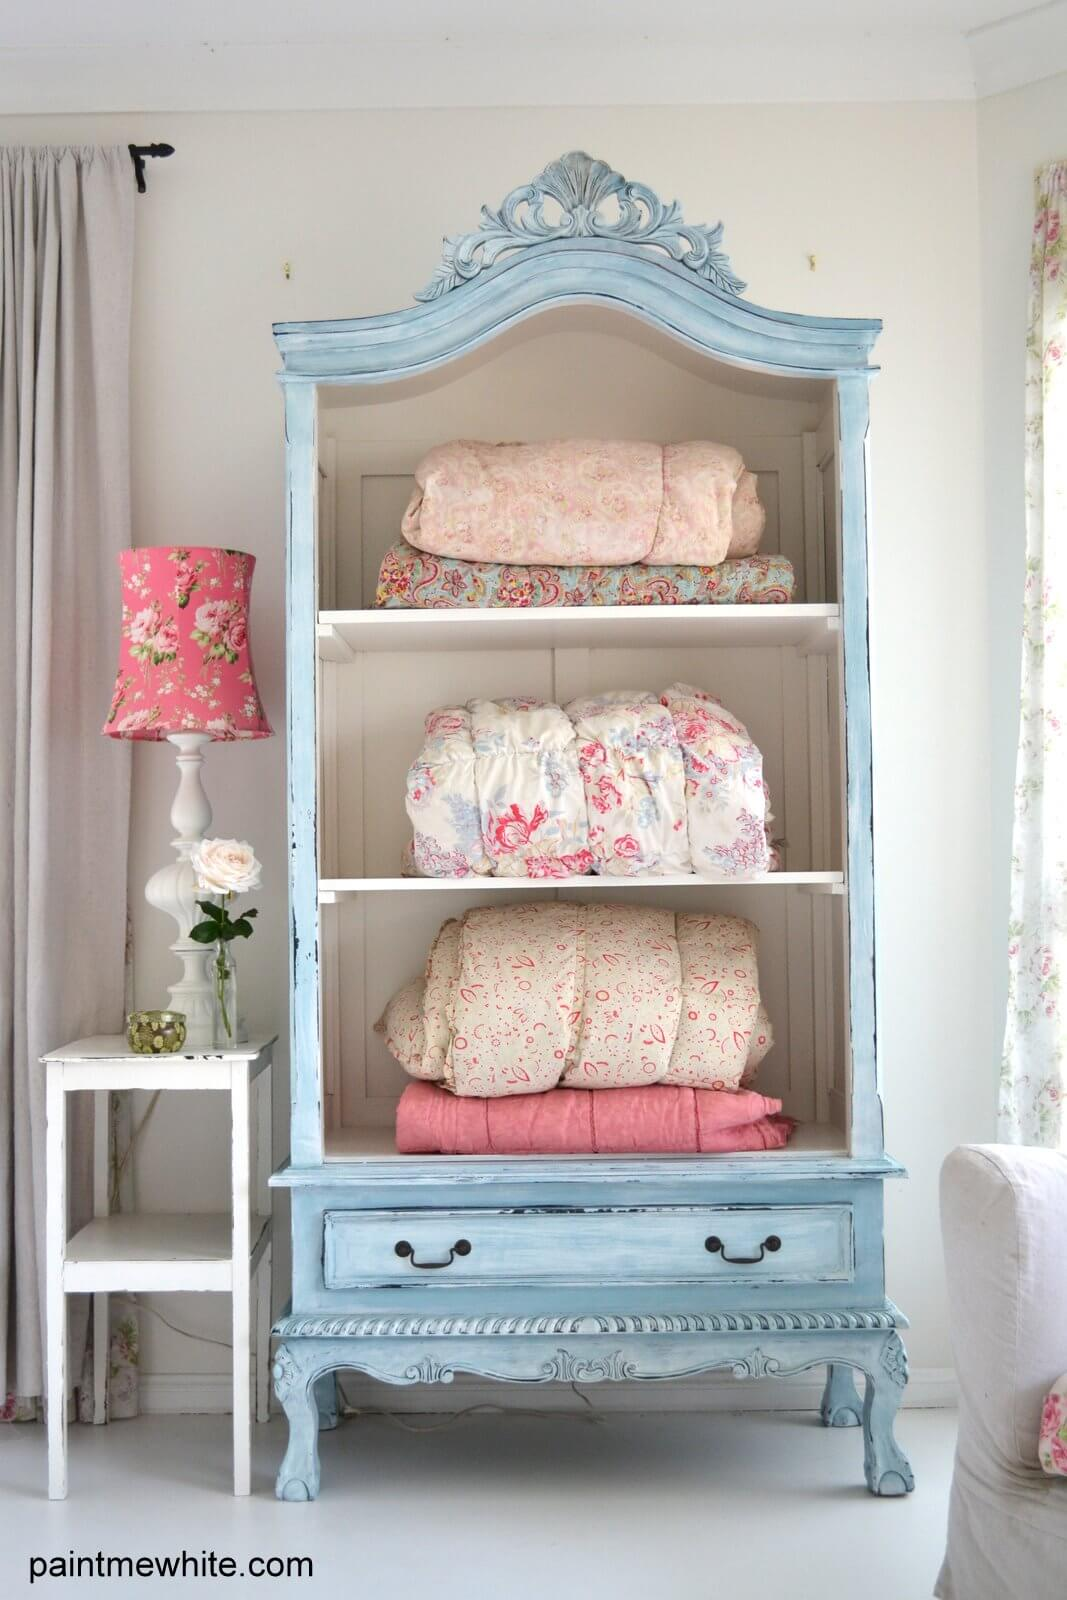 35 Best Shabby Chic Bedroom Design And Decor Ideas For